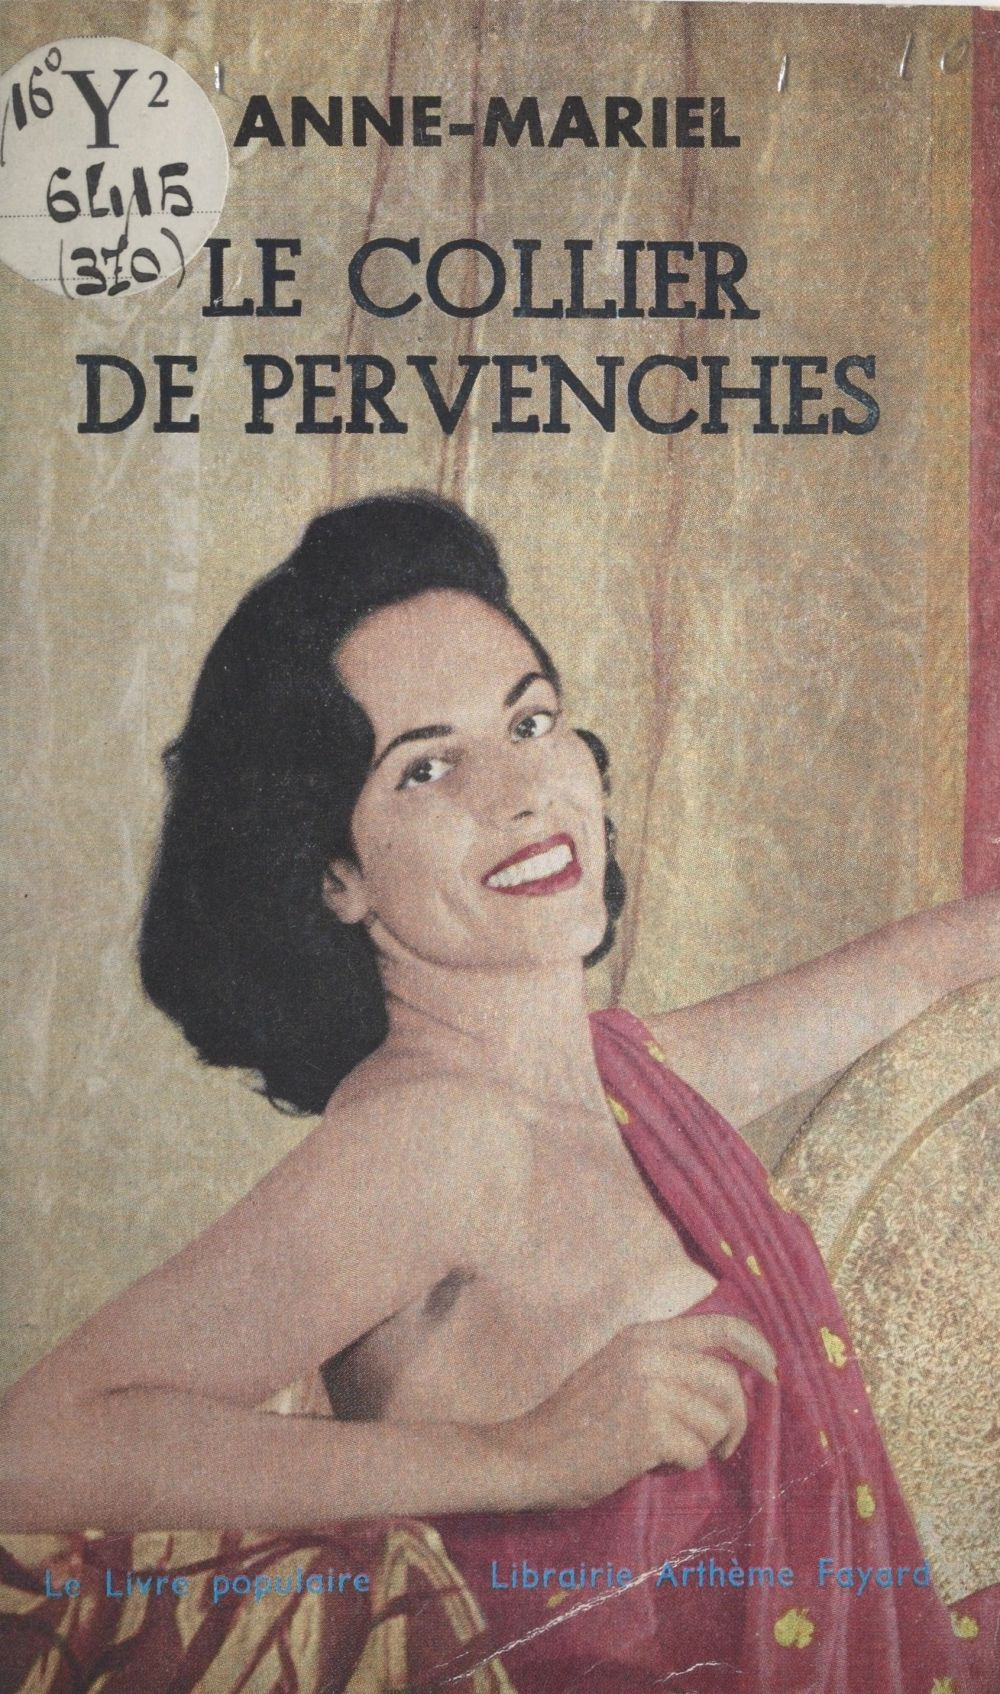 Le collier de pervenches